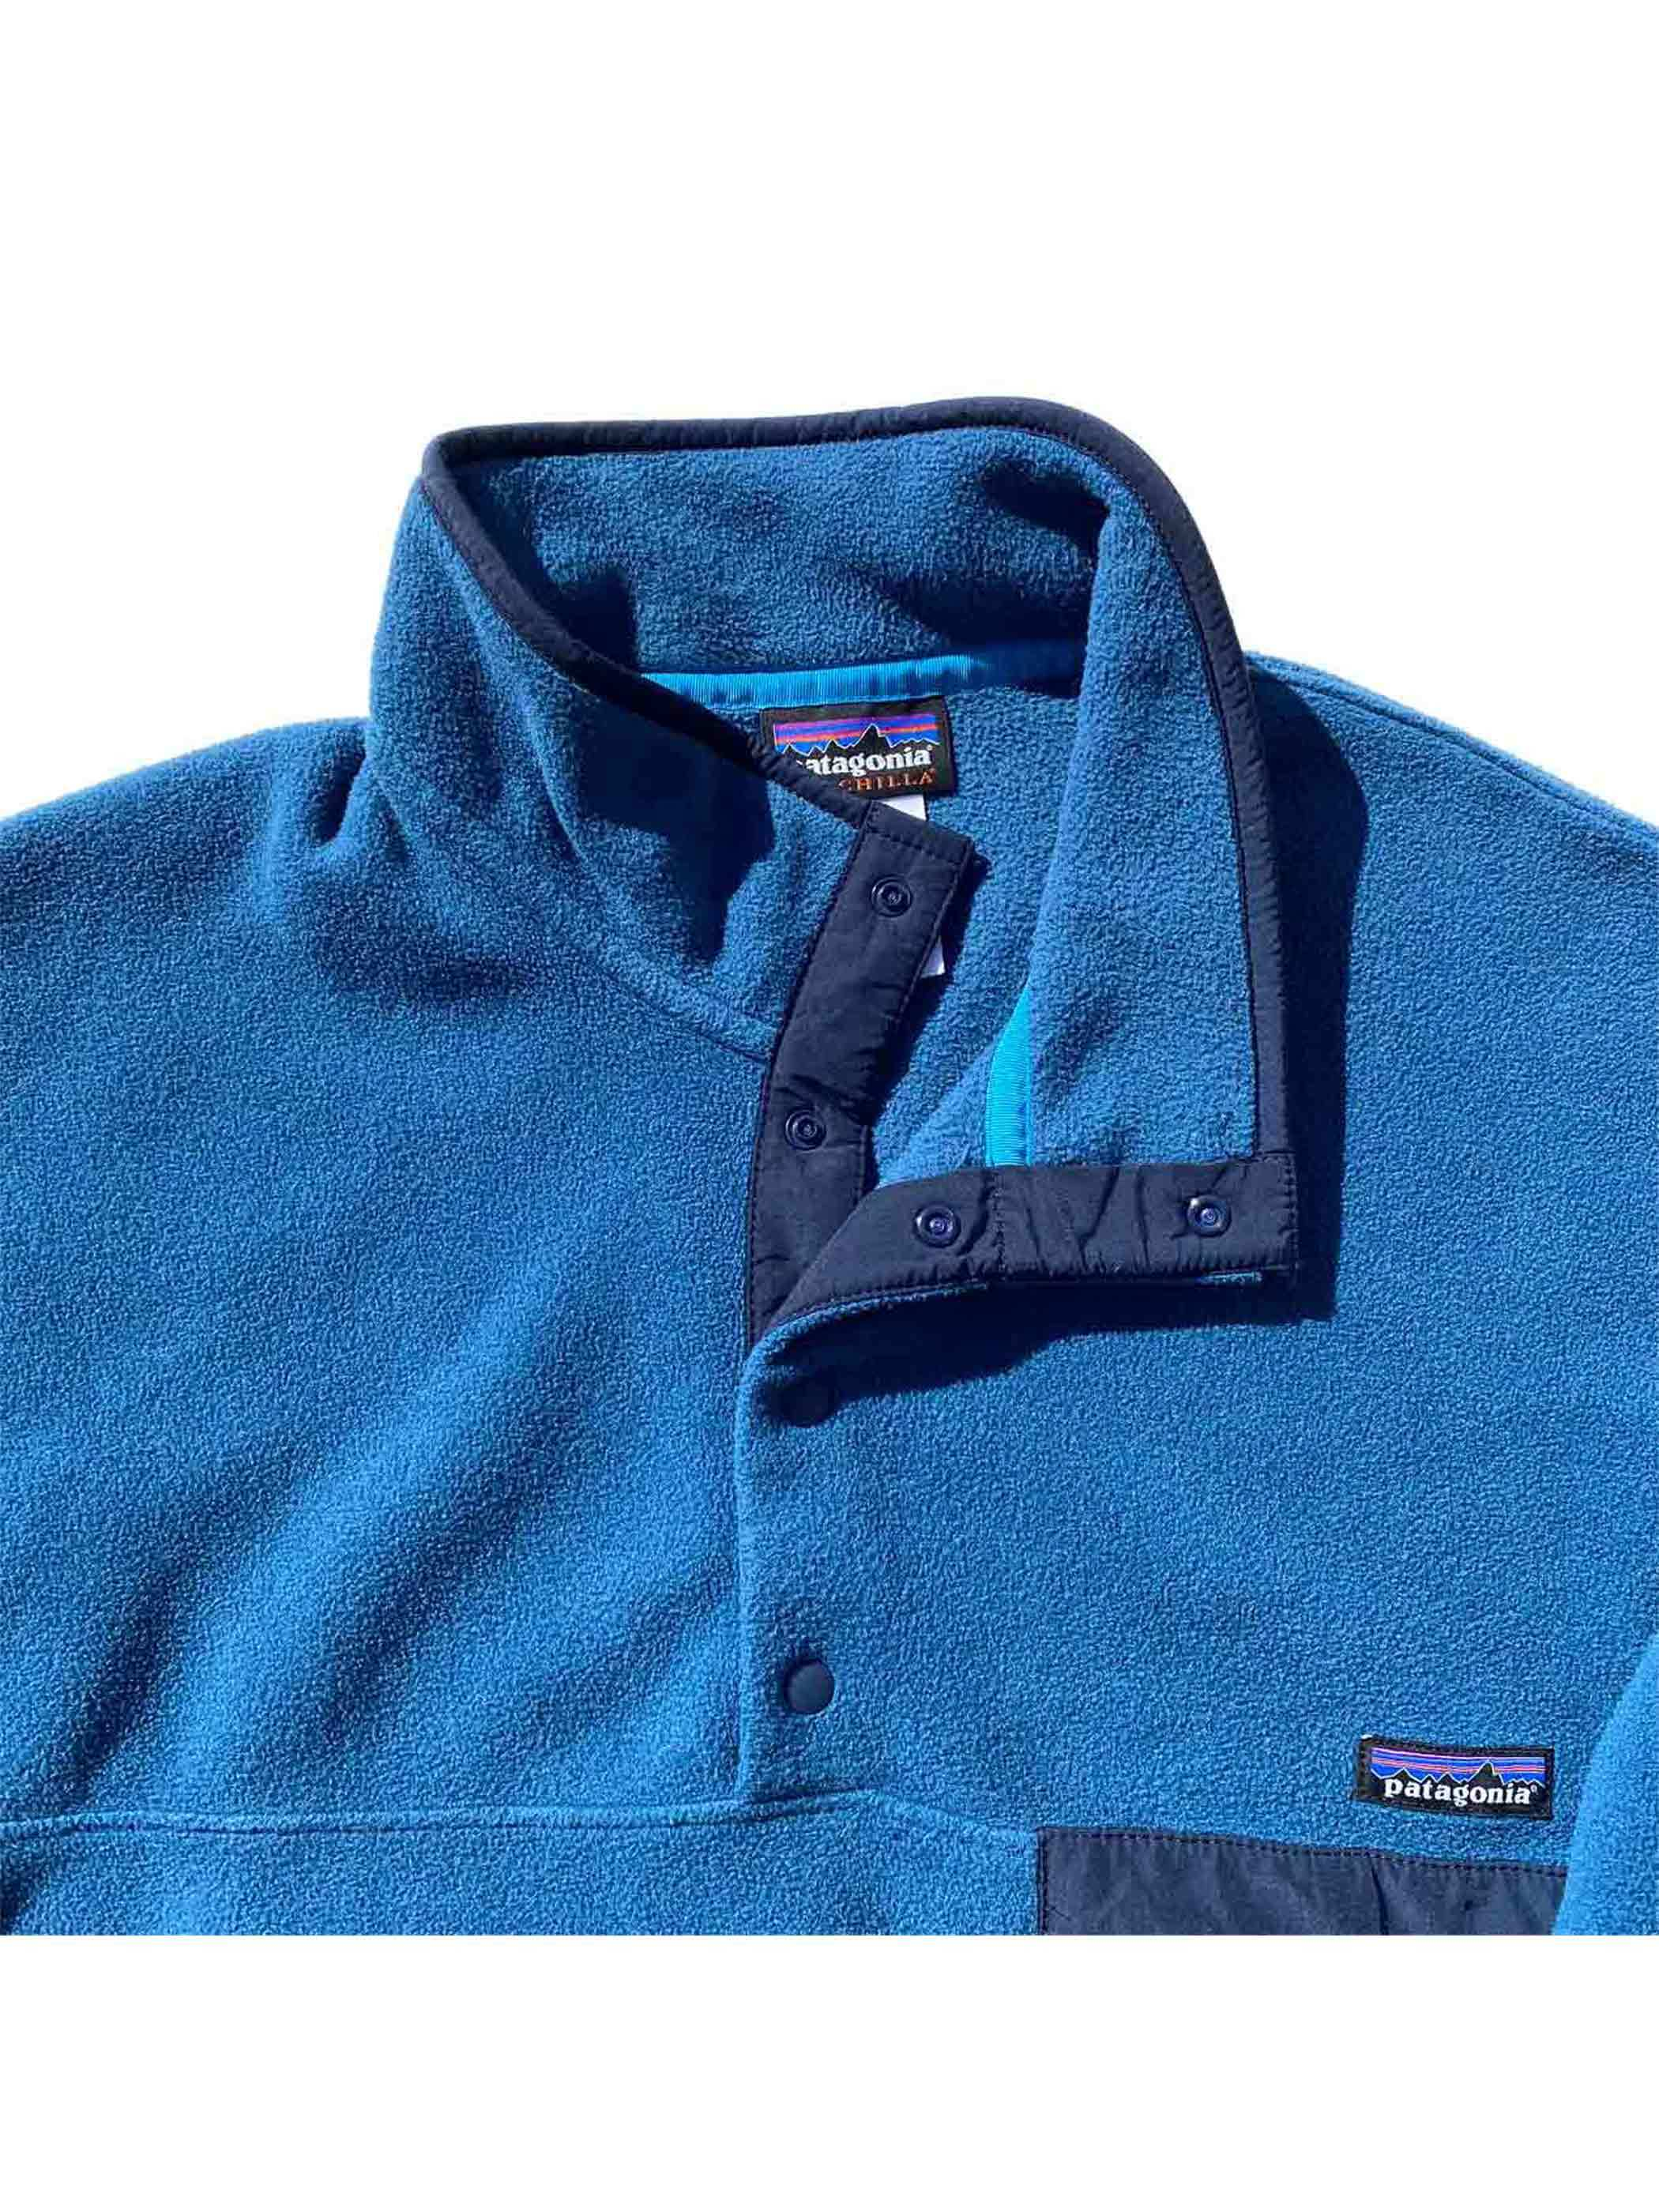 00's~ PATAGONIA SYNCHILLA Snap-T Blue [L]